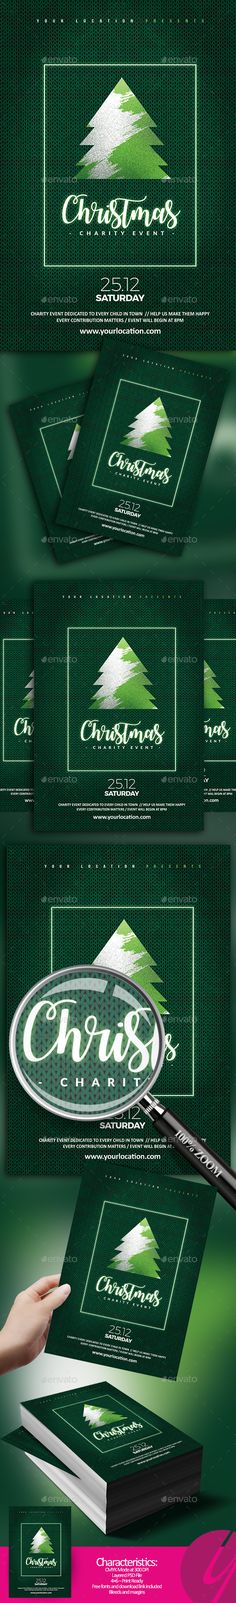 Christmas Charity Flyer - Events Flyers